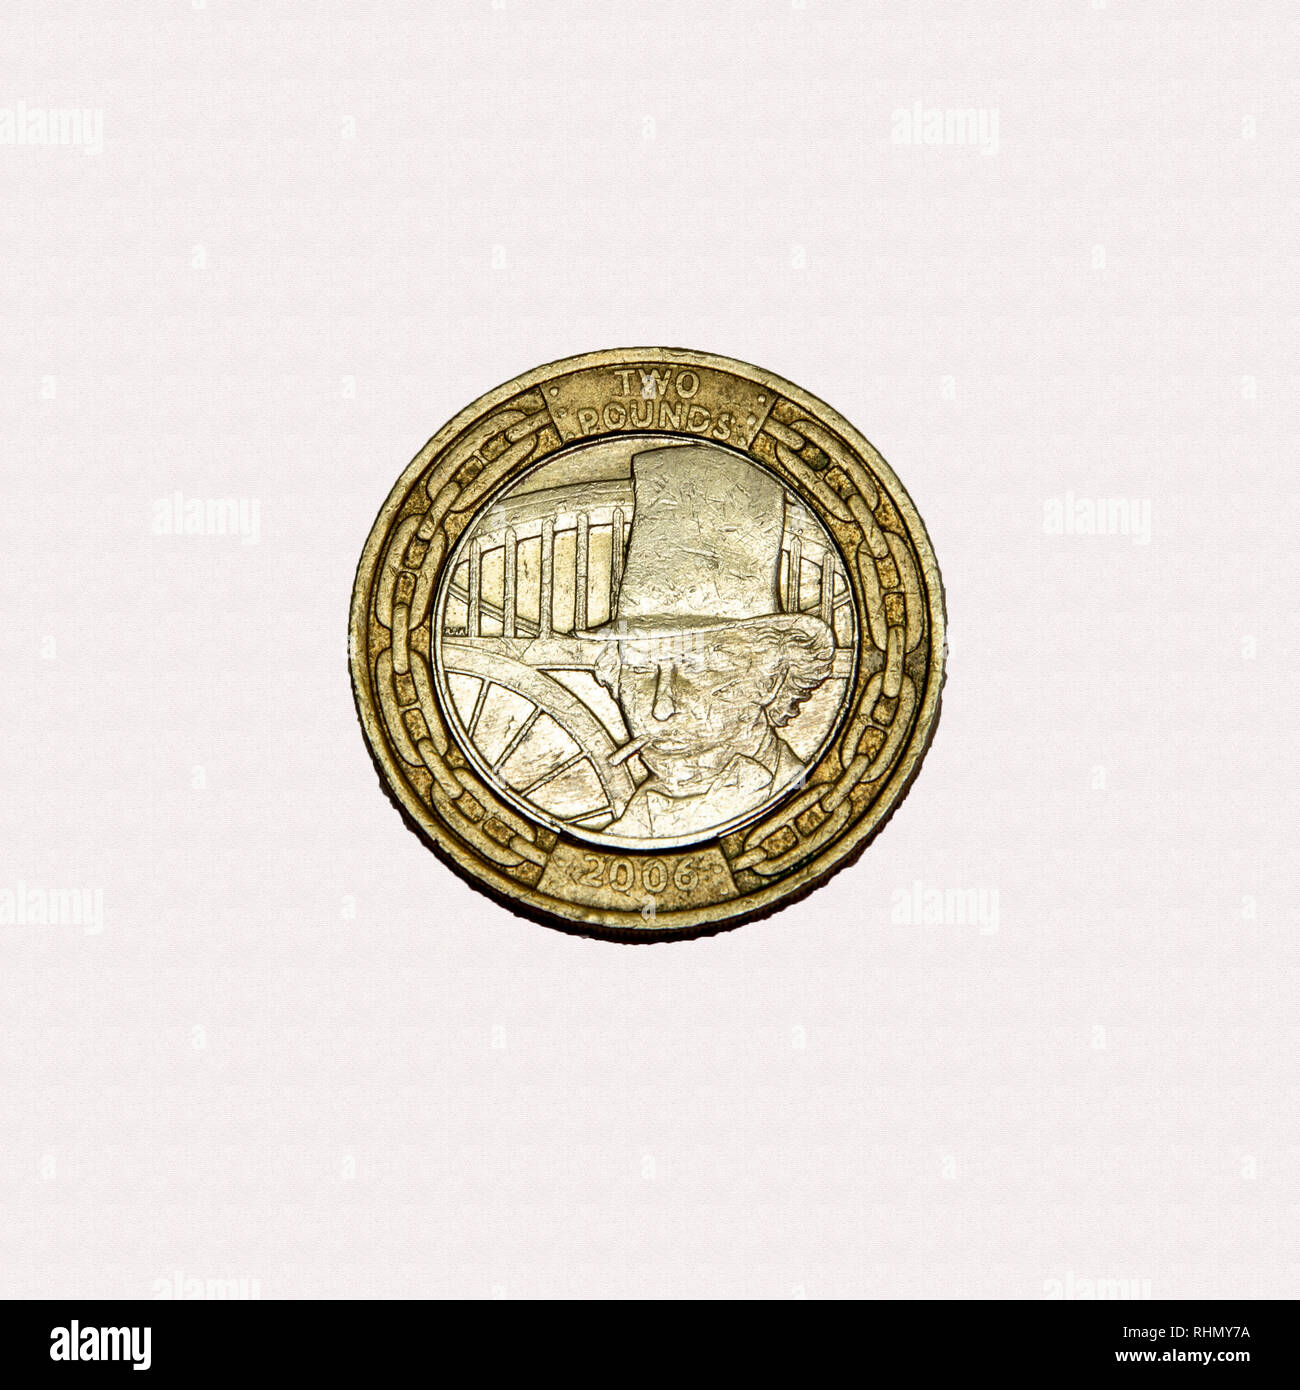 Limited edition British £2 coin commemorating Isambard Kingdom Brunel the famous engineer with image of his face Stock Photo